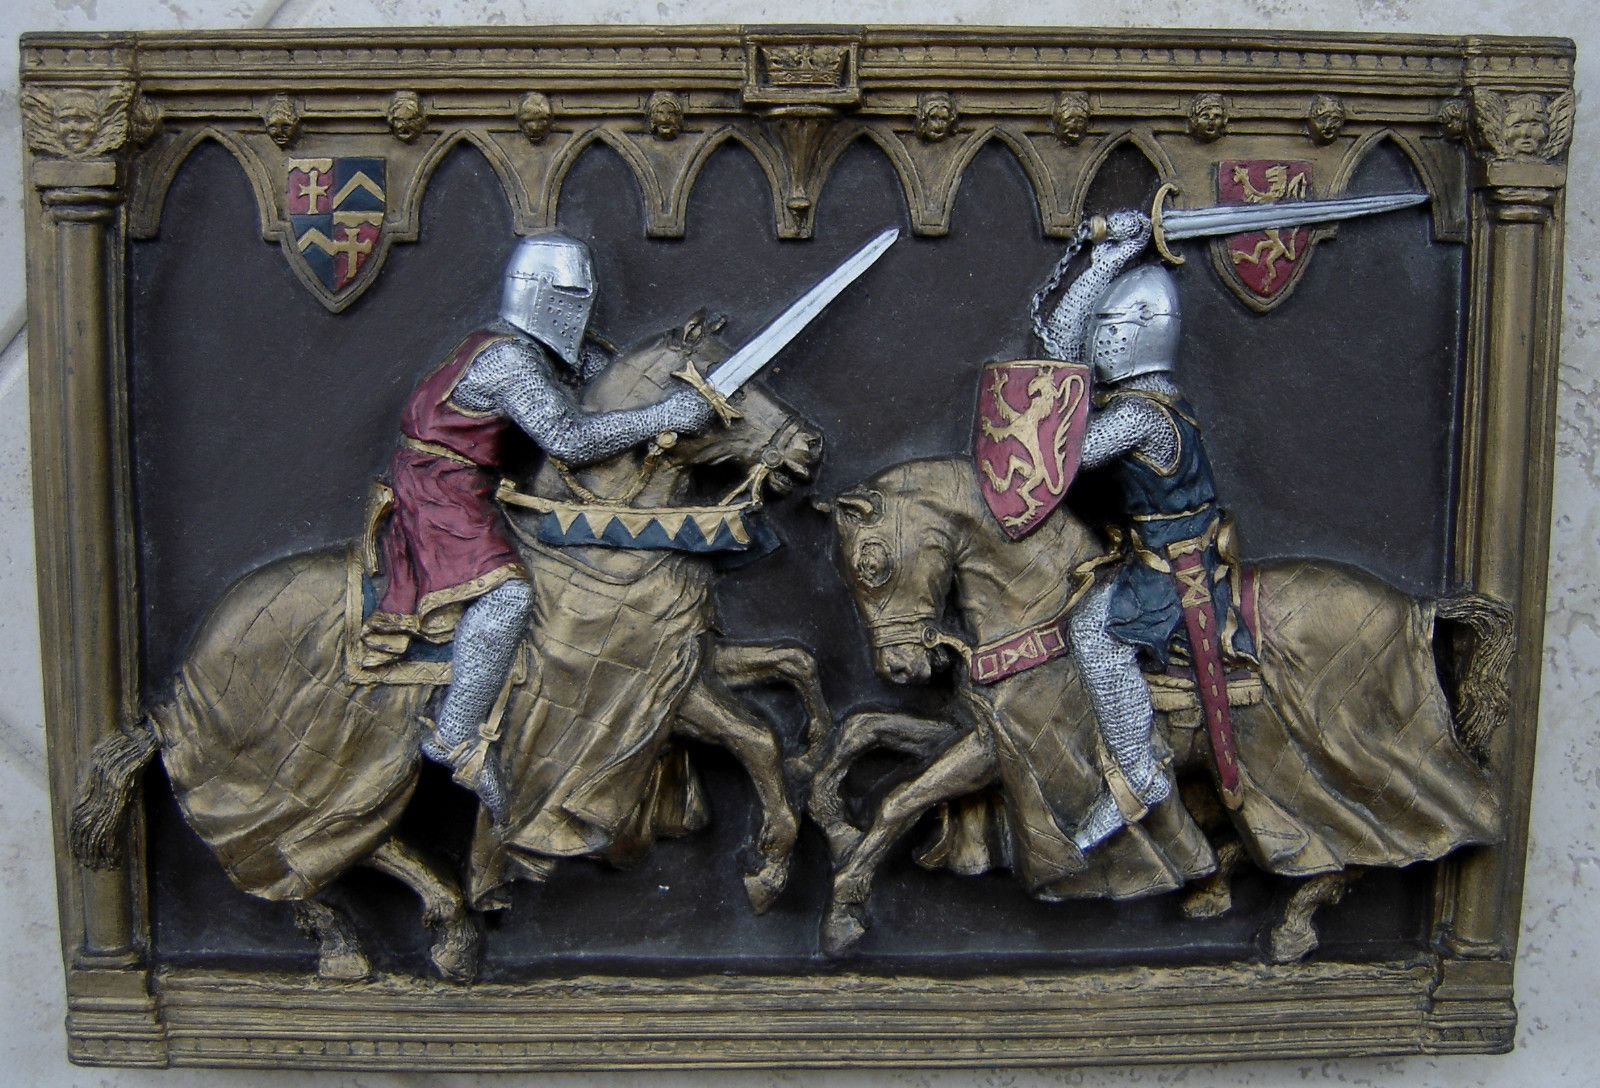 marcus replica hanging medieval knights horse jousting wall plaque d cor england knight and. Black Bedroom Furniture Sets. Home Design Ideas